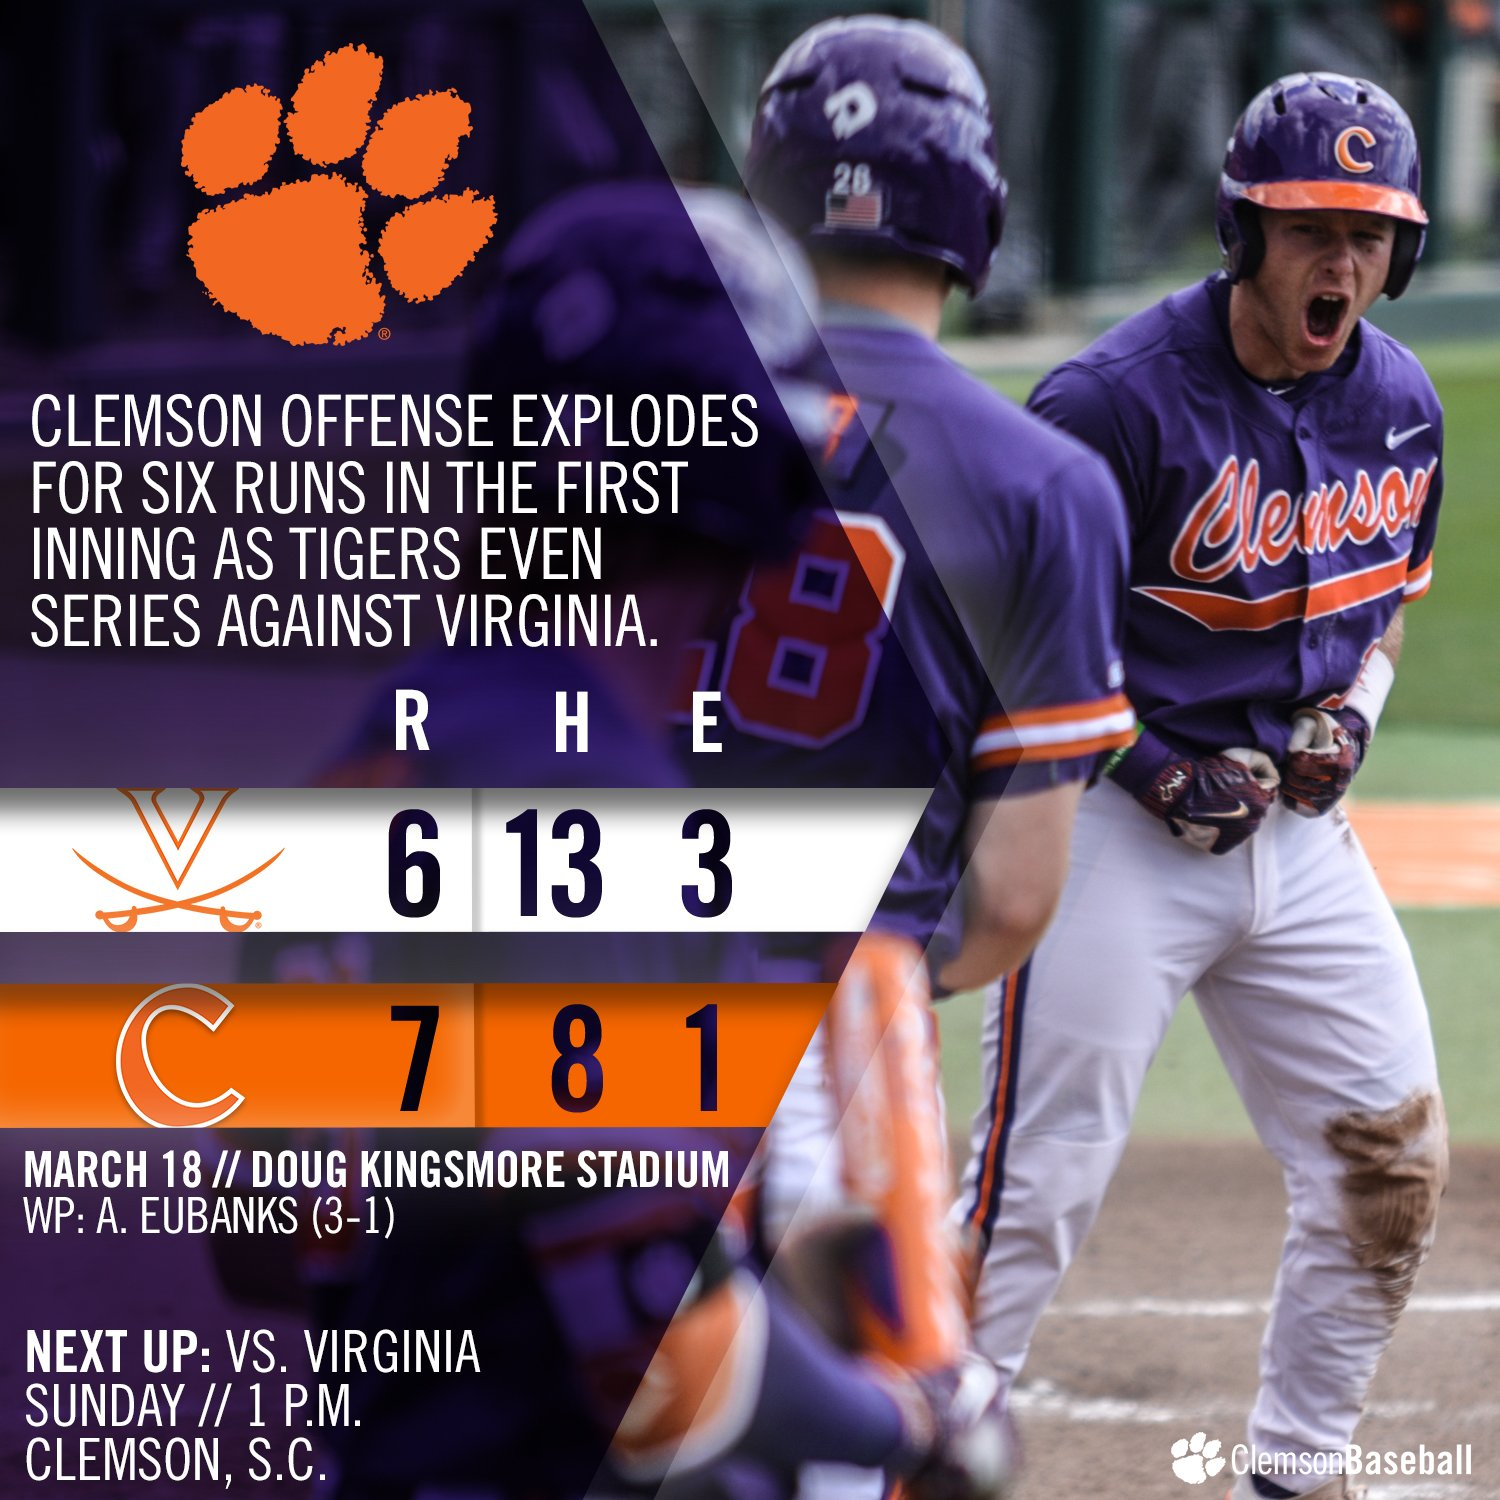 FINAL: #Clemson evens series against No. 11 Virginia with a 7-6 win on Saturday. STORY: https://t.co/vY7lvp2Yb1 https://t.co/DvT5eTrCG7